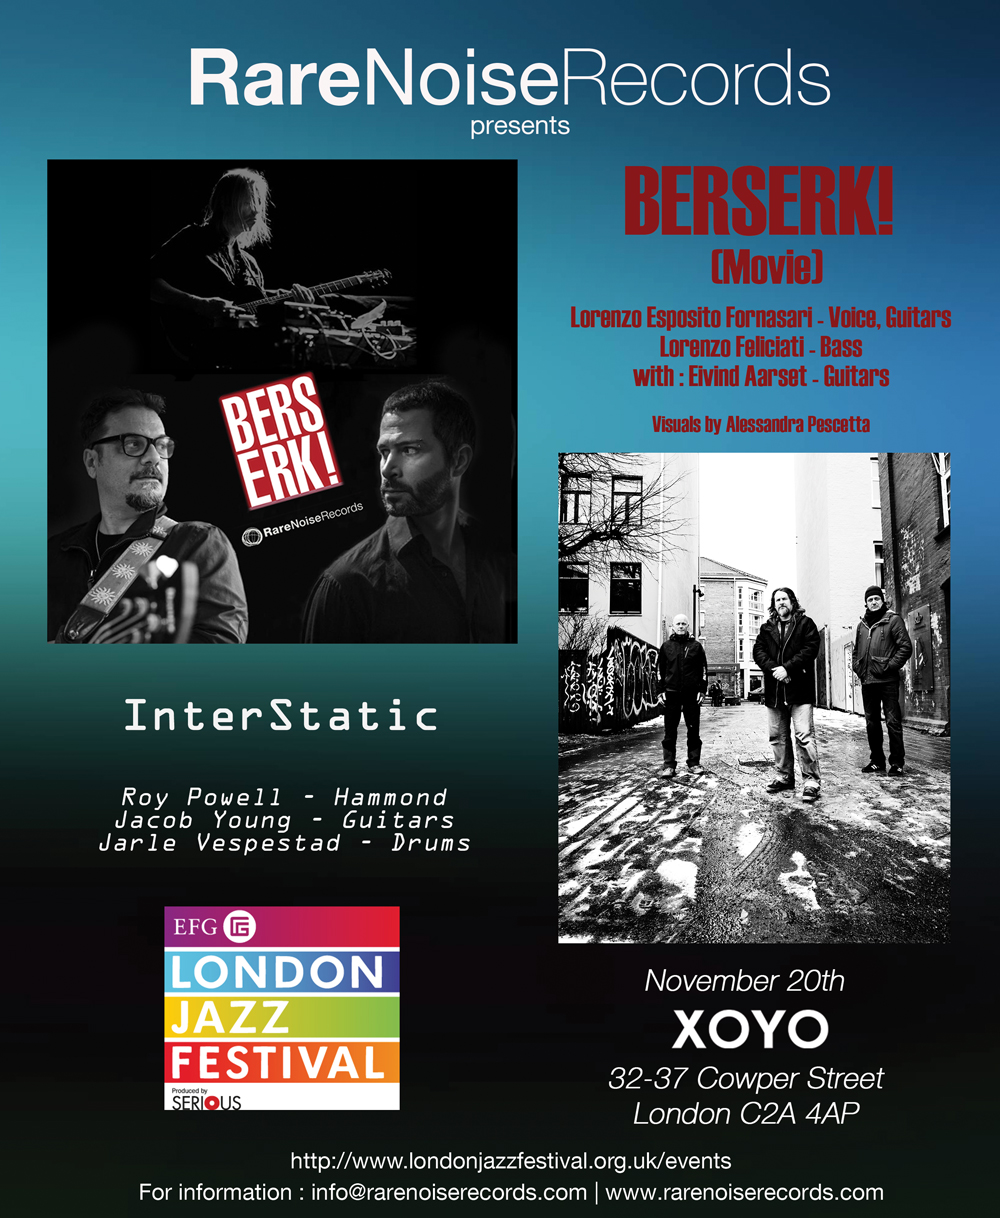 Live Event! Berserk! and InterStatic at the London Jazz Festival - 20 November 2013 4